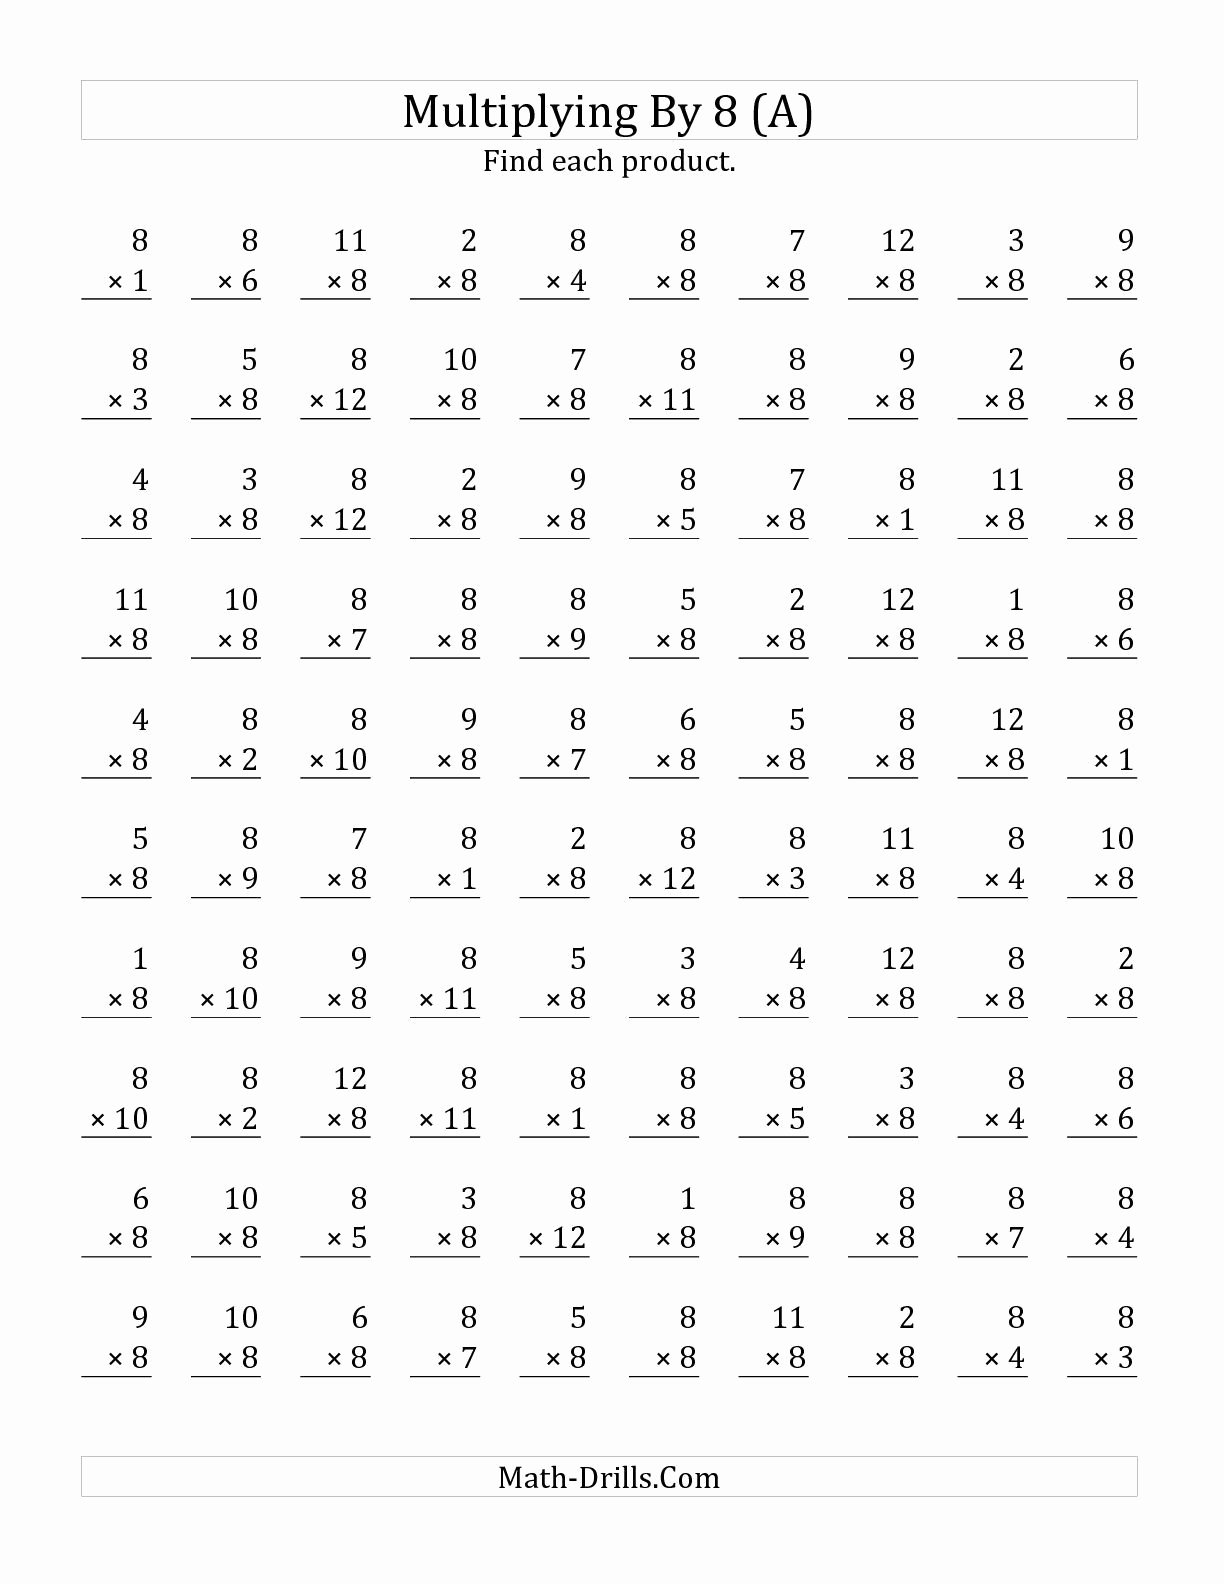 Multiplication Worksheets 1 Best Of the Multiplying 1 to 12 by 8 A Math Worksheet From the